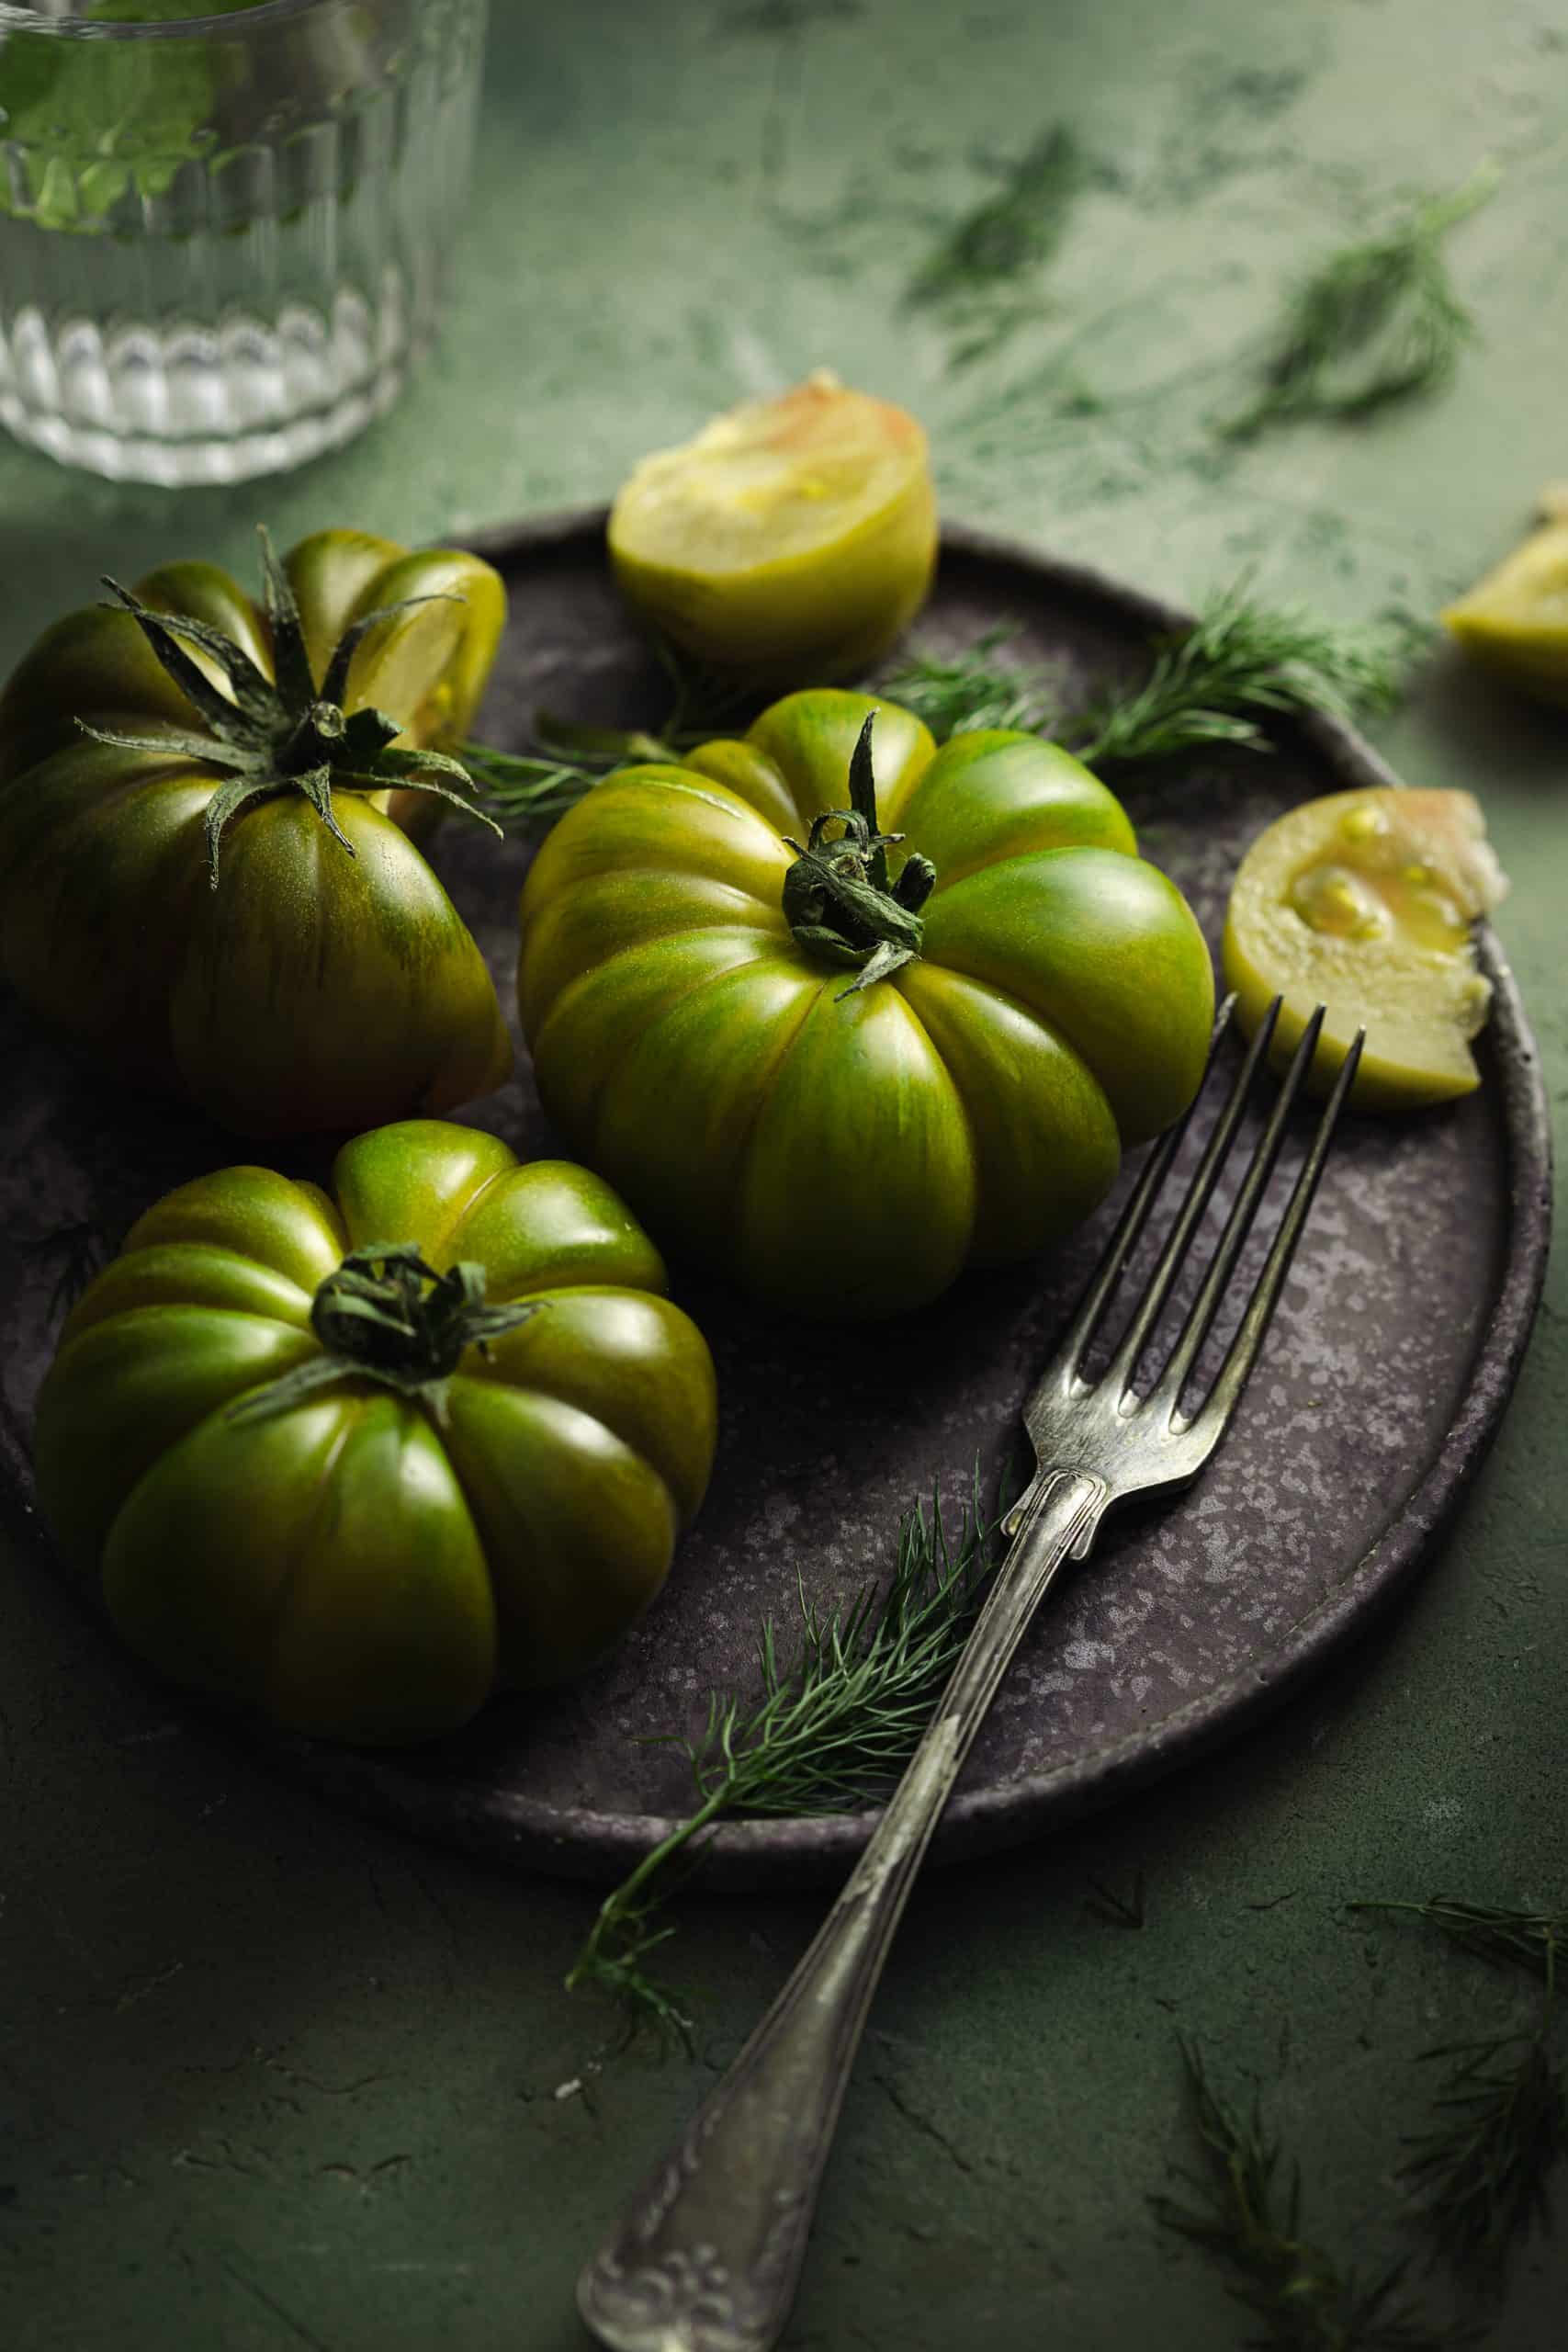 Green tomatoes monochrome - Food Photography - healthy Goodies by Lucia